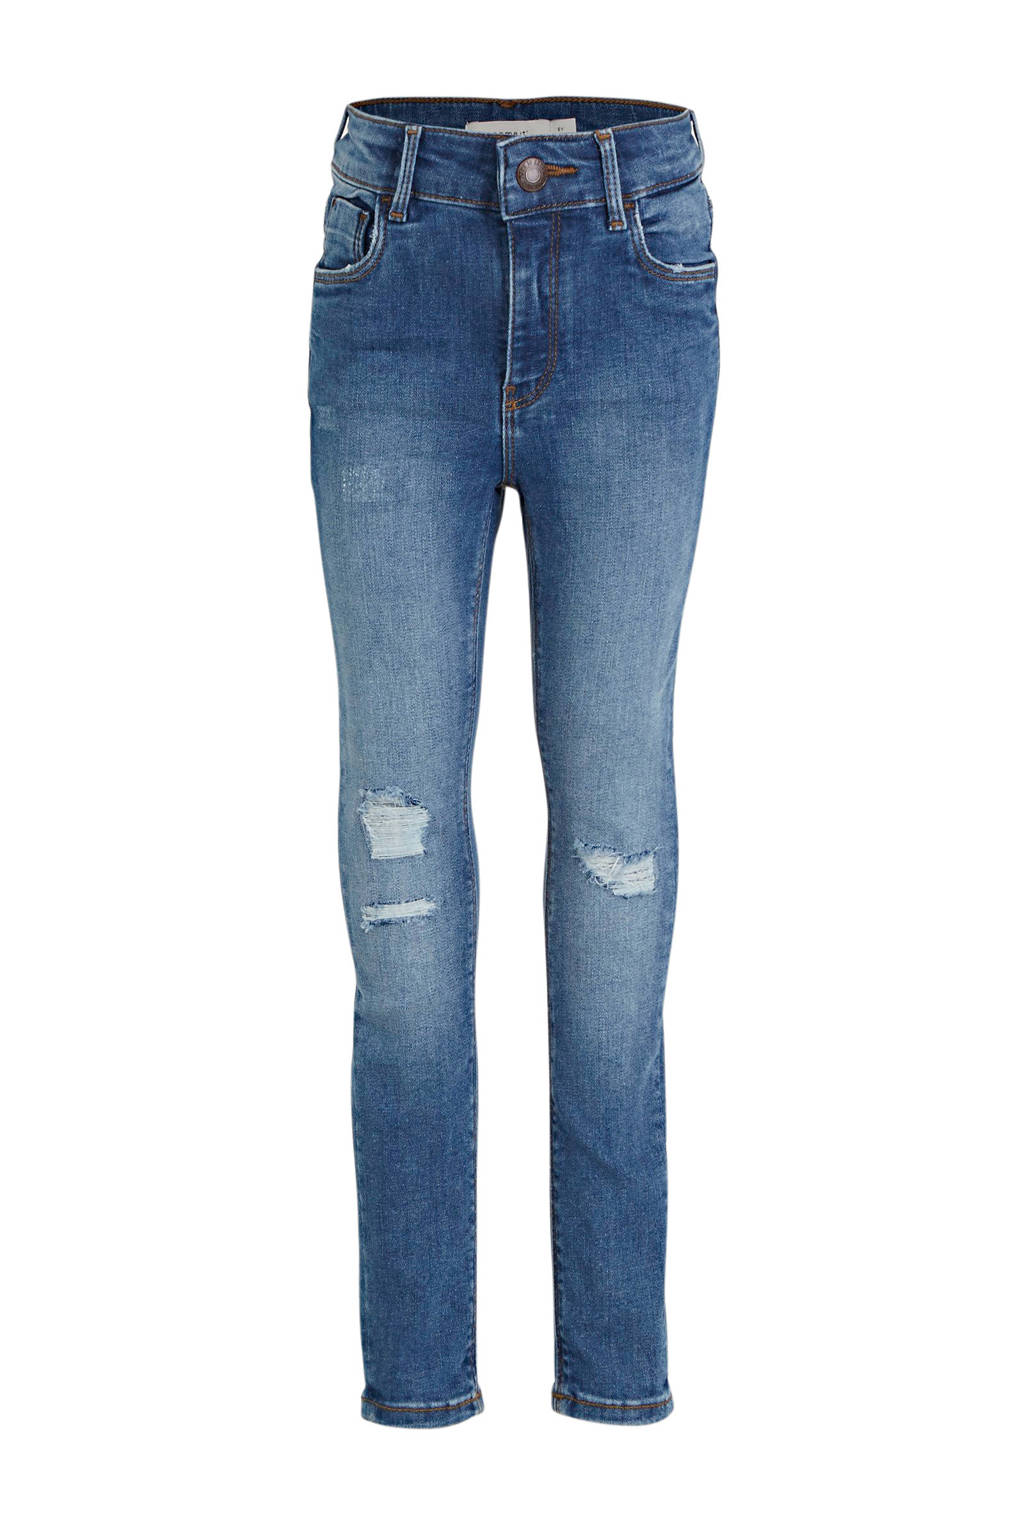 NAME IT KIDS high waist skinny fit jeans Polly stonewashed, Stonewashed